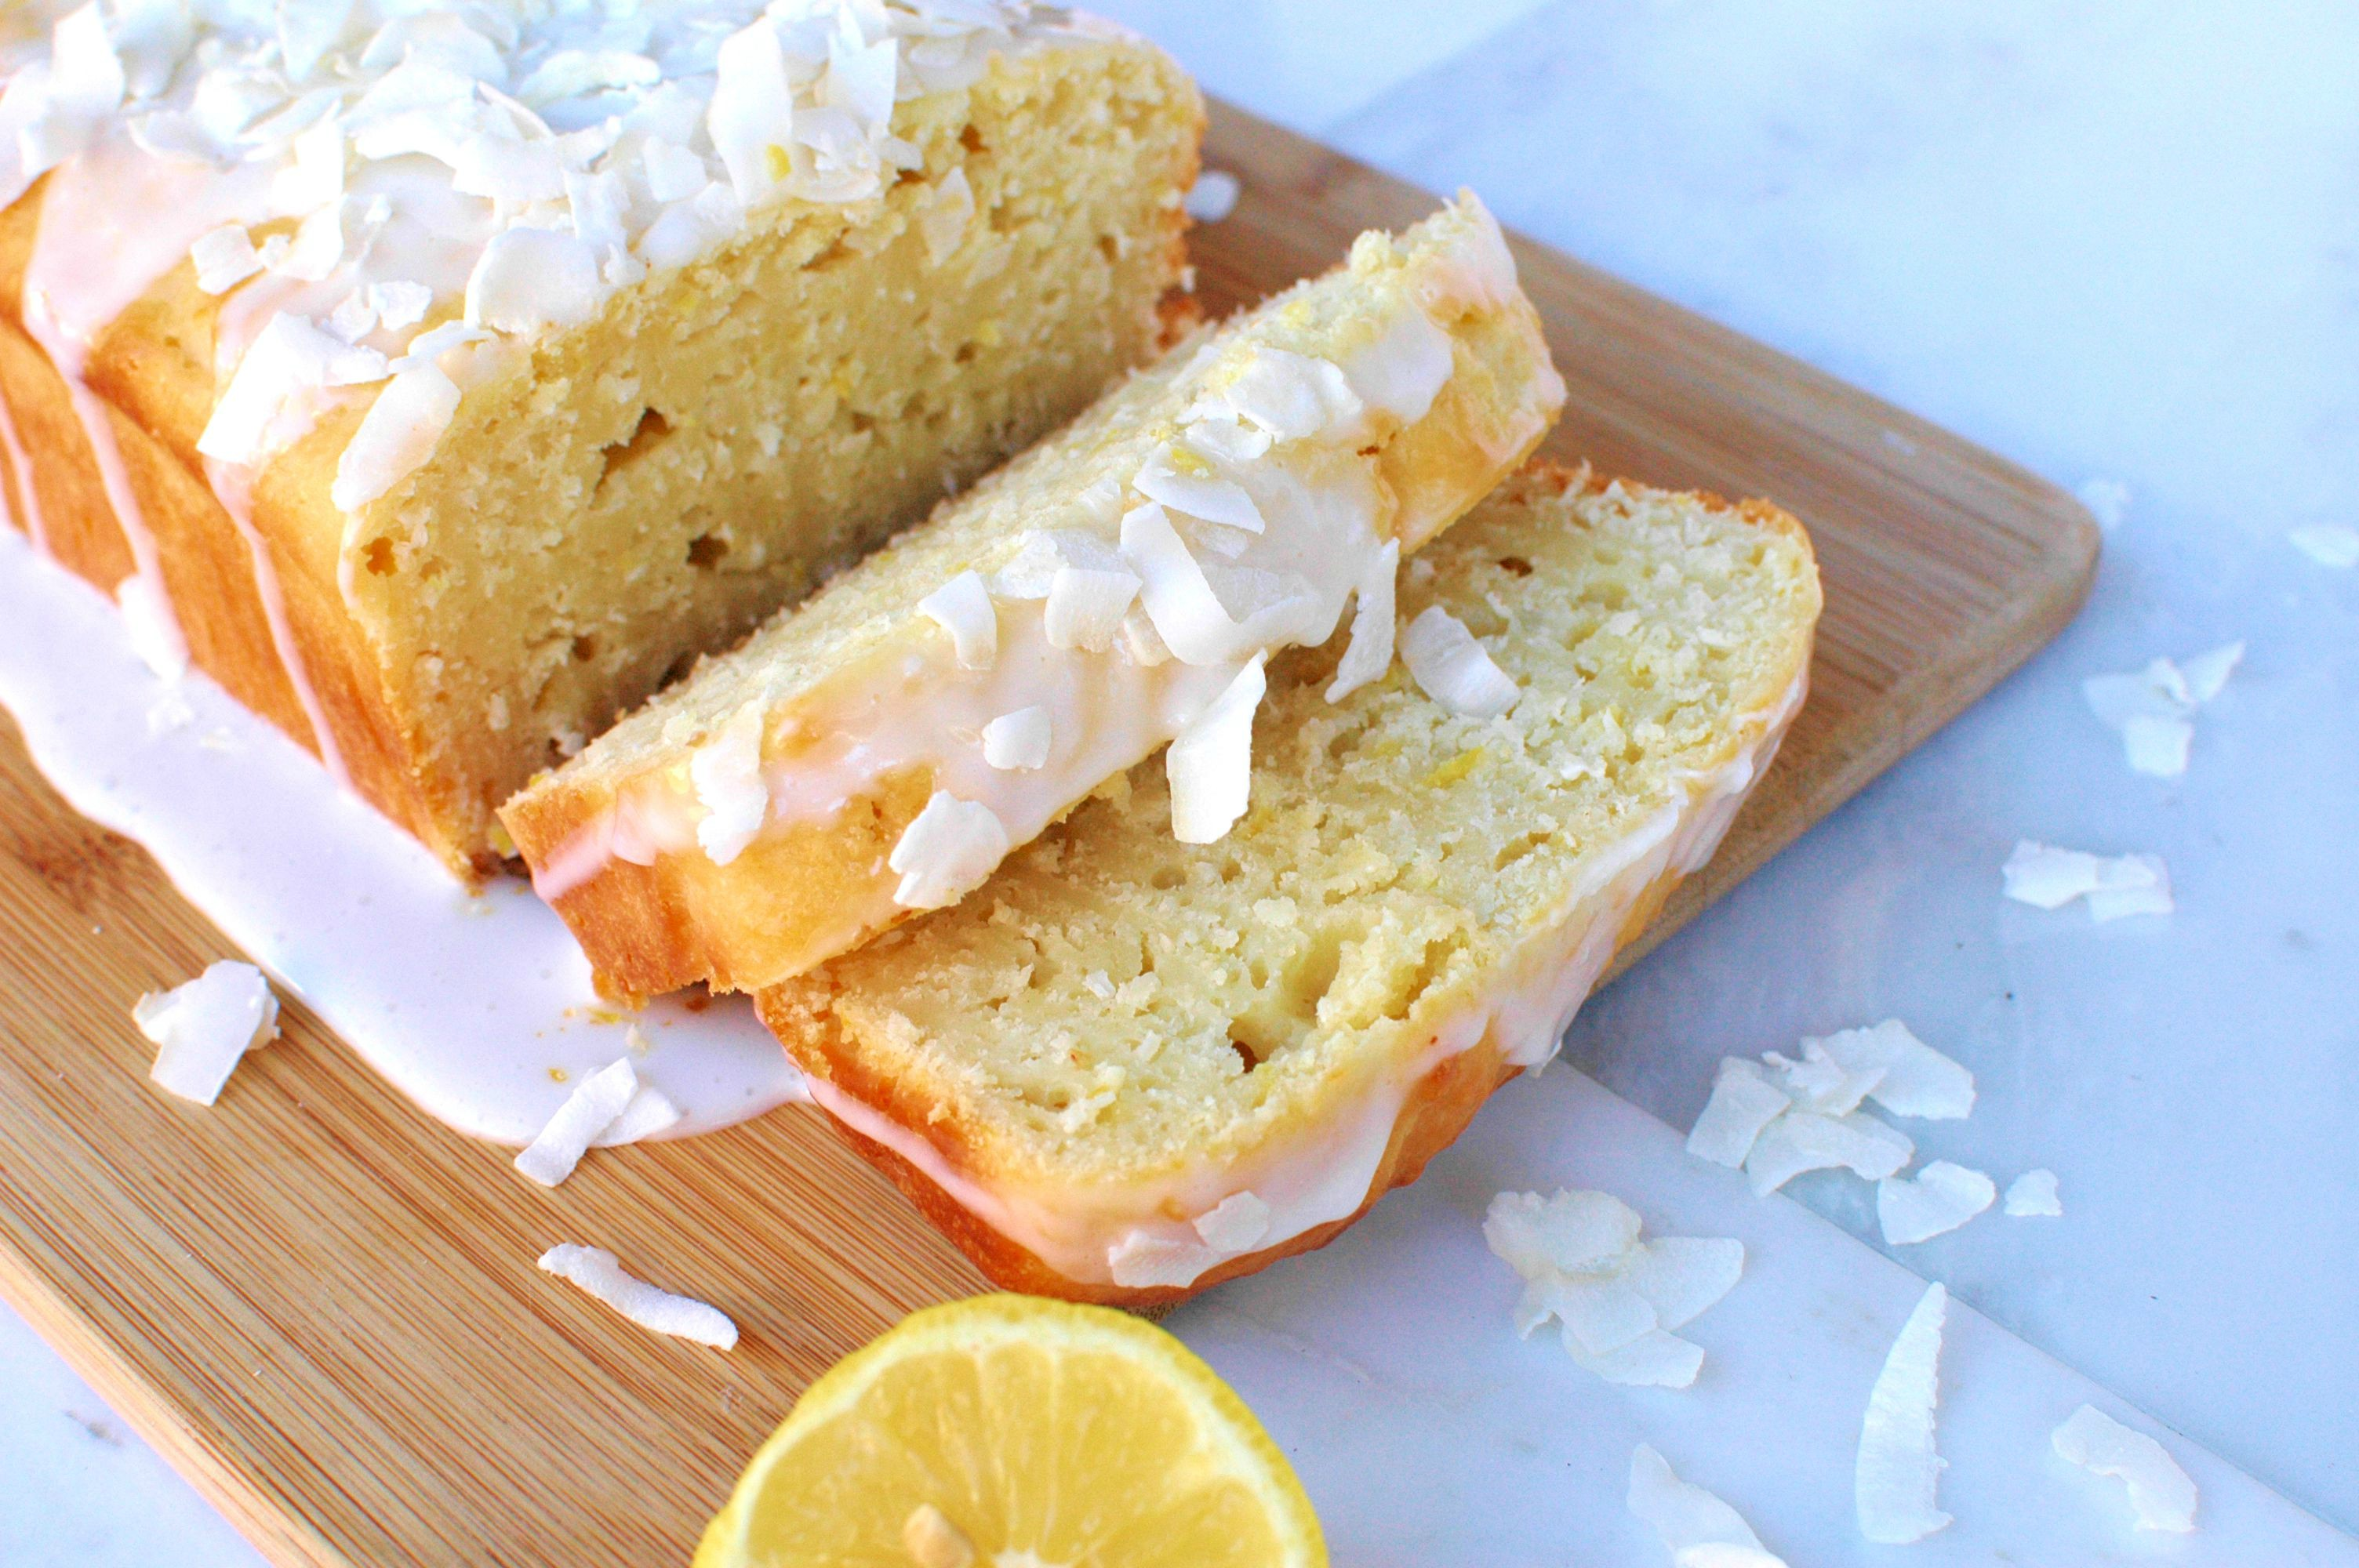 Calories In A Slice Of Lemon Coconut Cream Cake